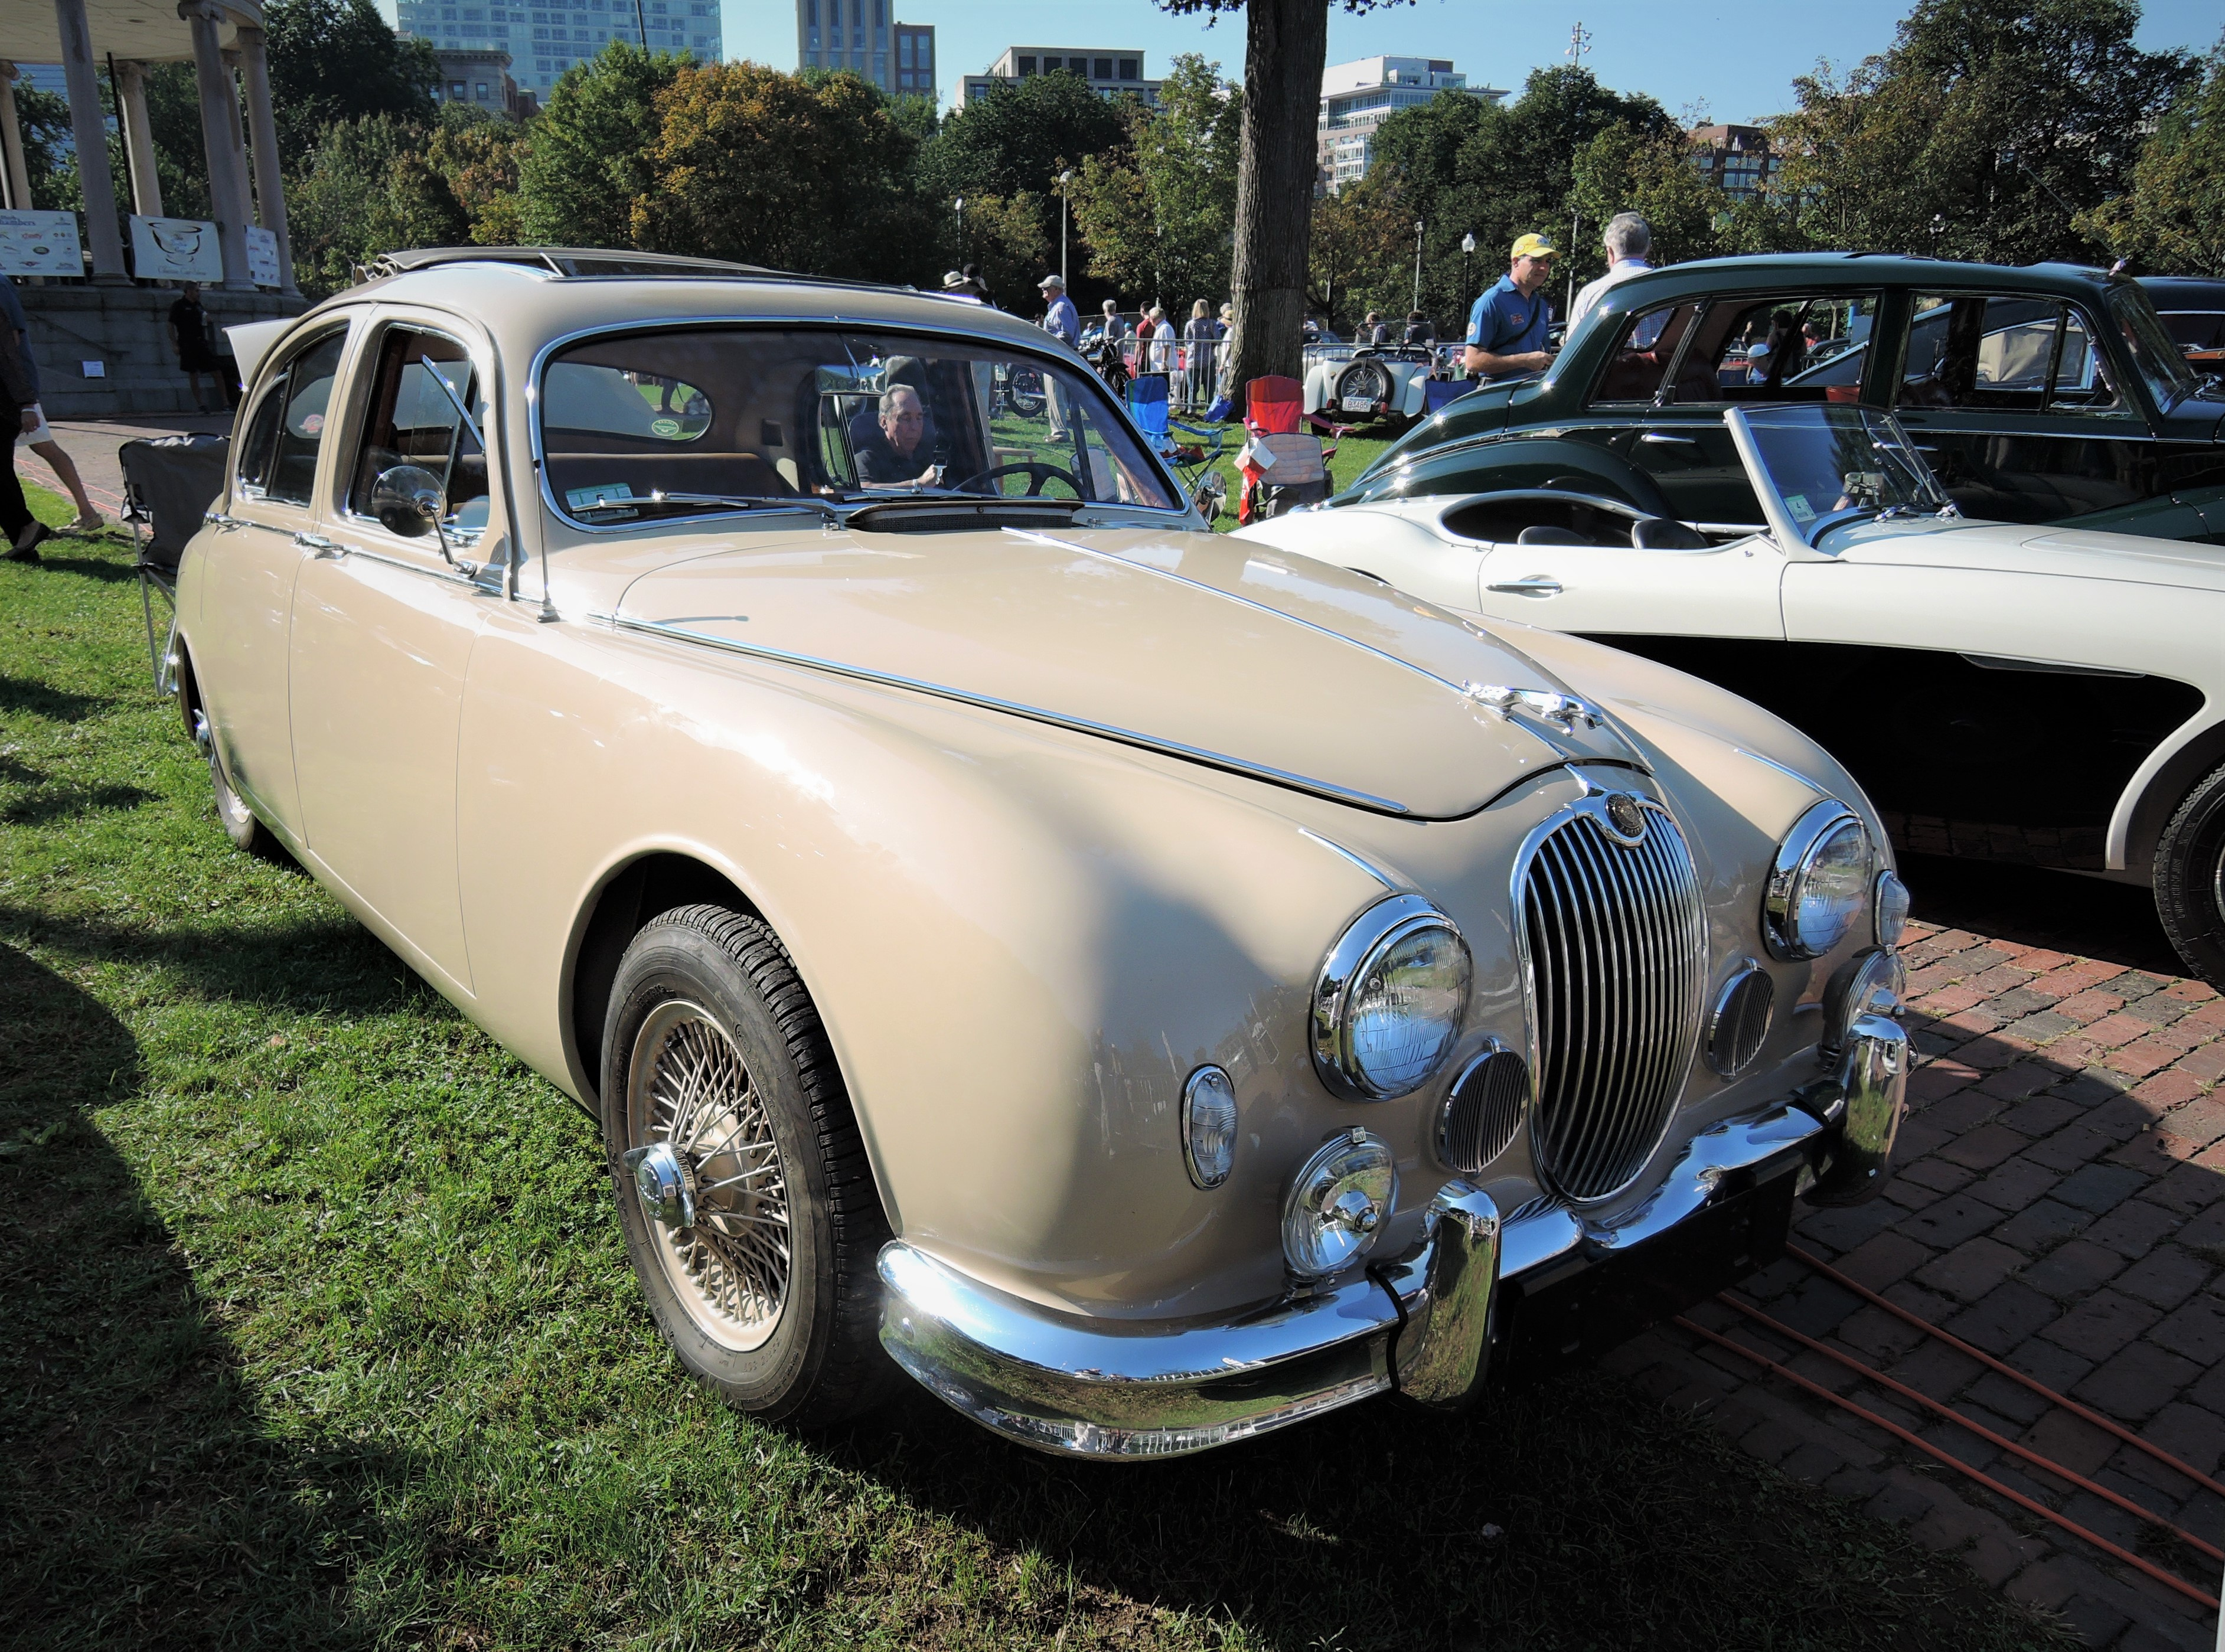 cream 1959 Jaguar 2.4 Saloon - The Boston Cup 2017